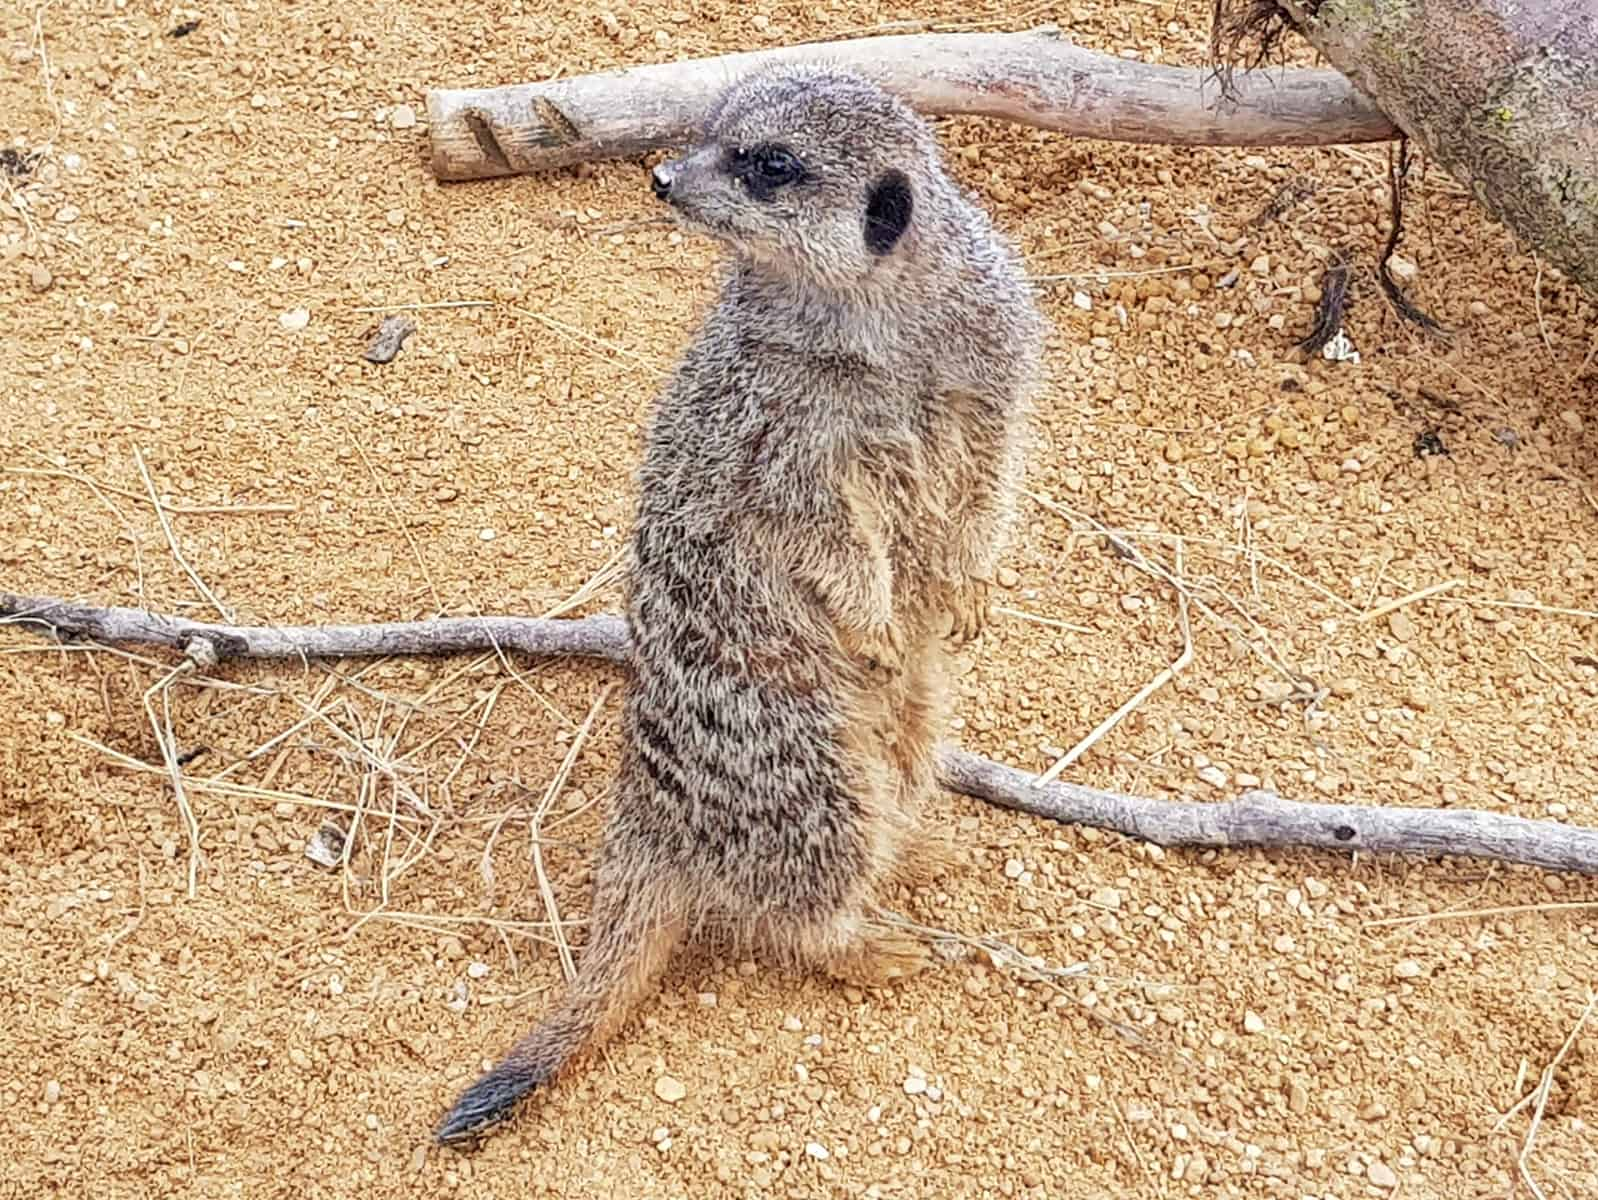 meerkat standing up at All Things Wild in Evesham, West Midlands